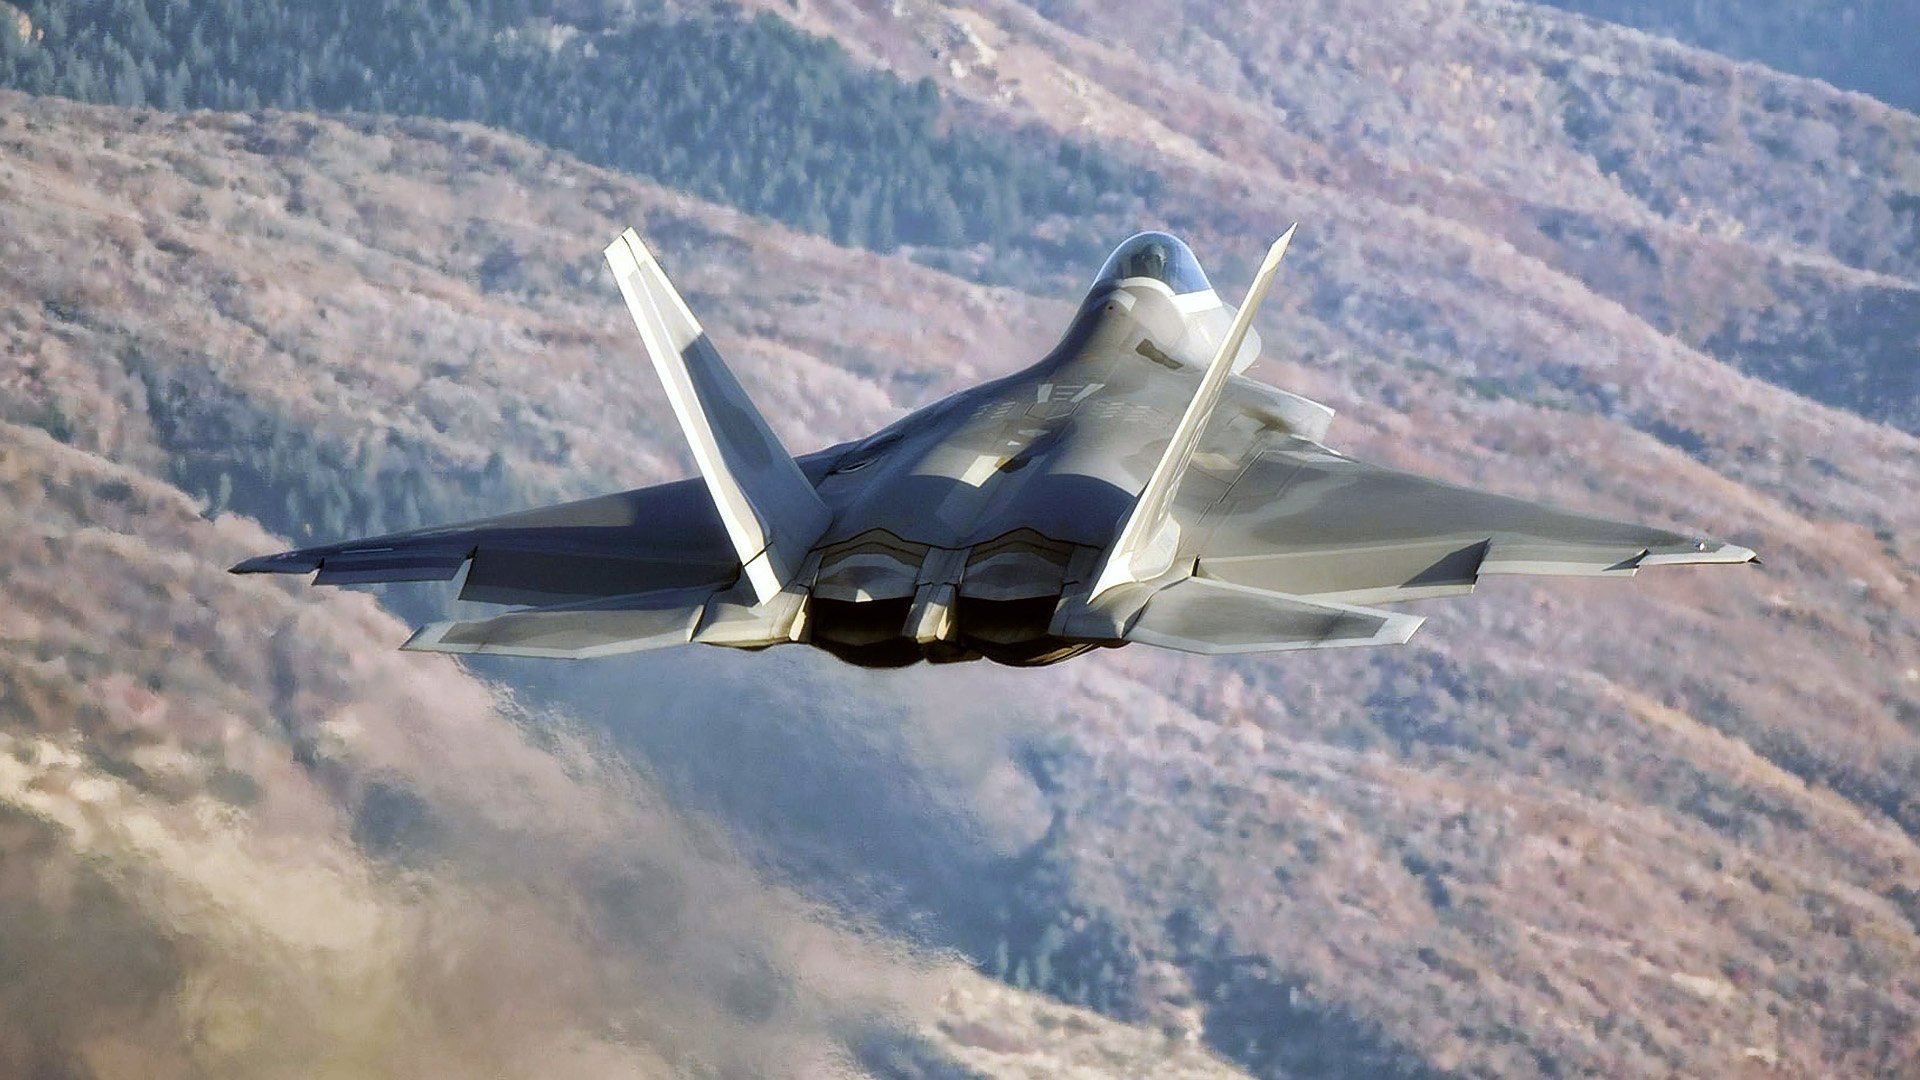 22 Flight force Military raptor weapons wallpaper background 1920x1080